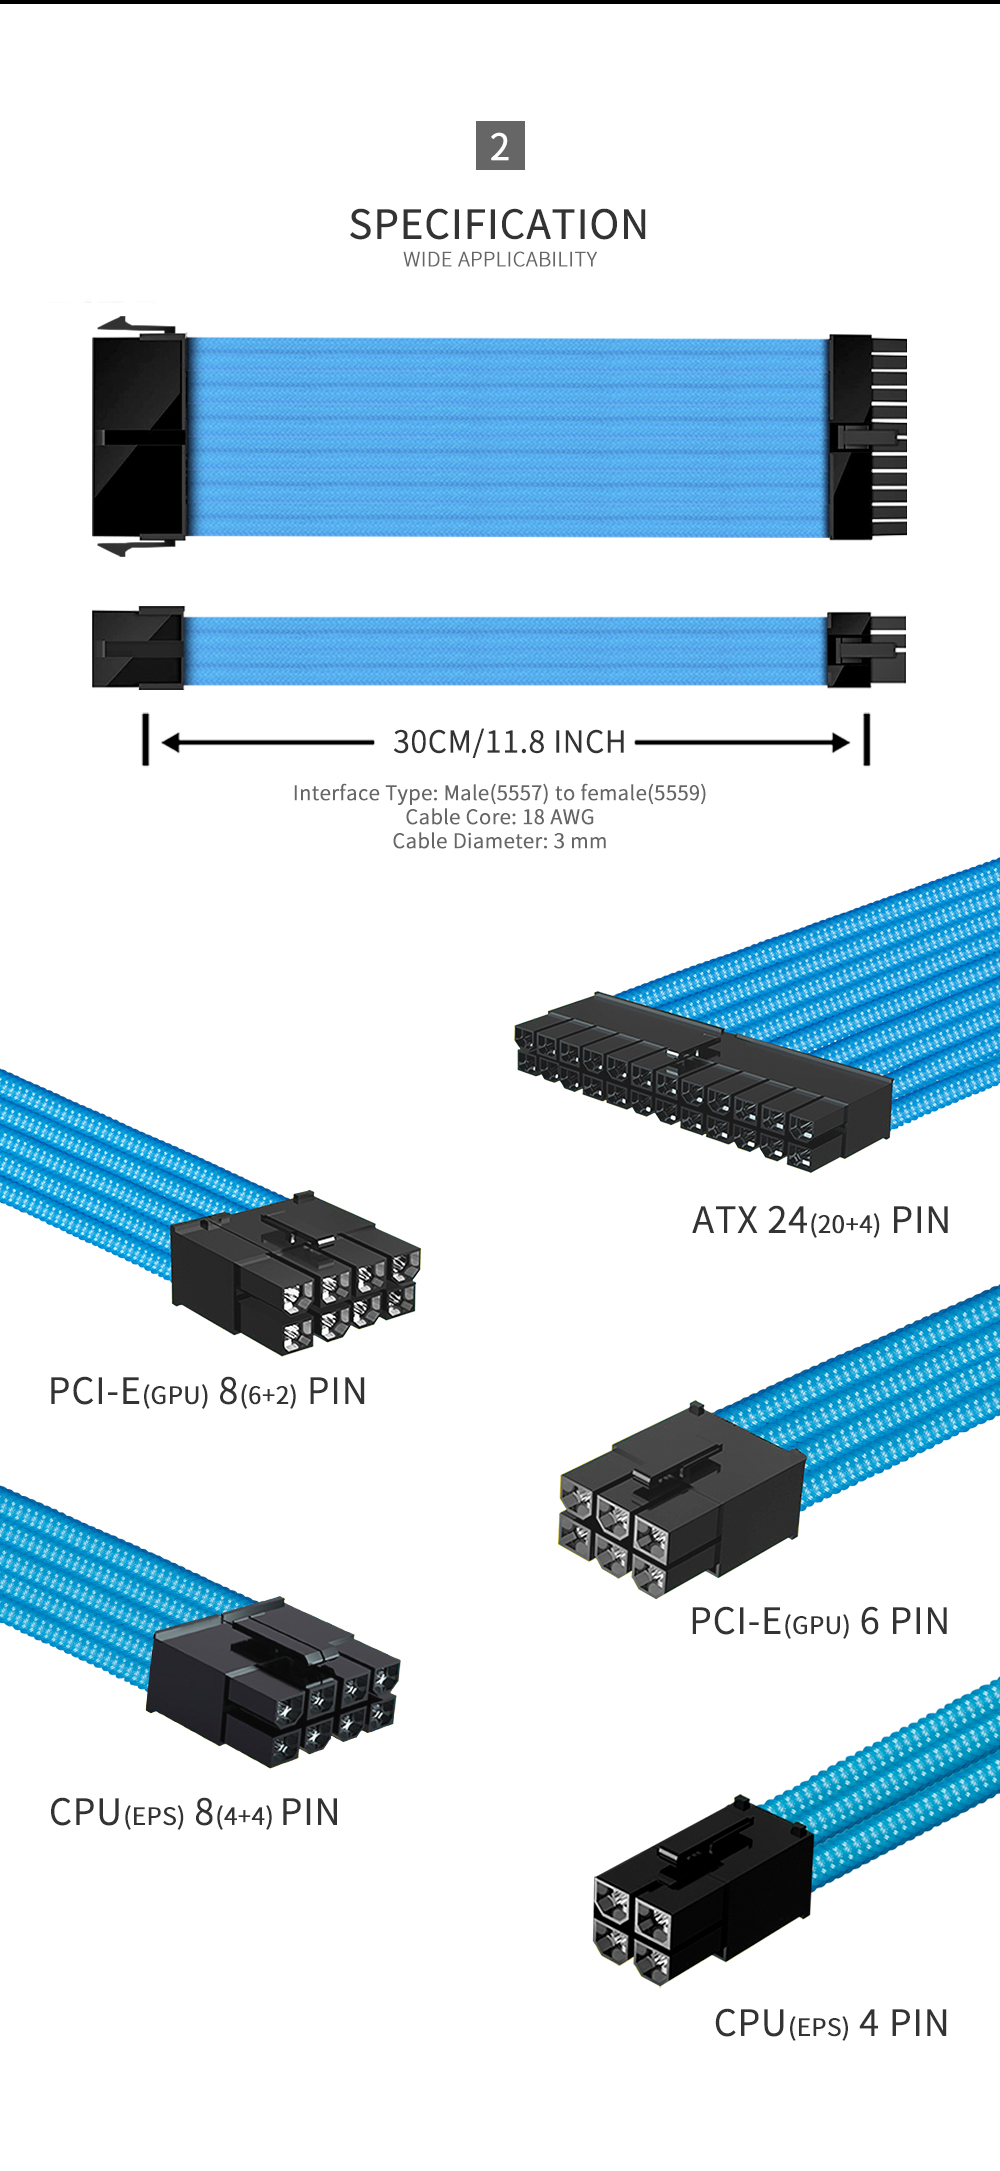 FormulaMod NCK3 Series PSU Extension Cable Kit , Solid/Mix Color Cable Mix Combo 300mm ATX24Pin PCI-E8Pin CPU8Pin With Combs